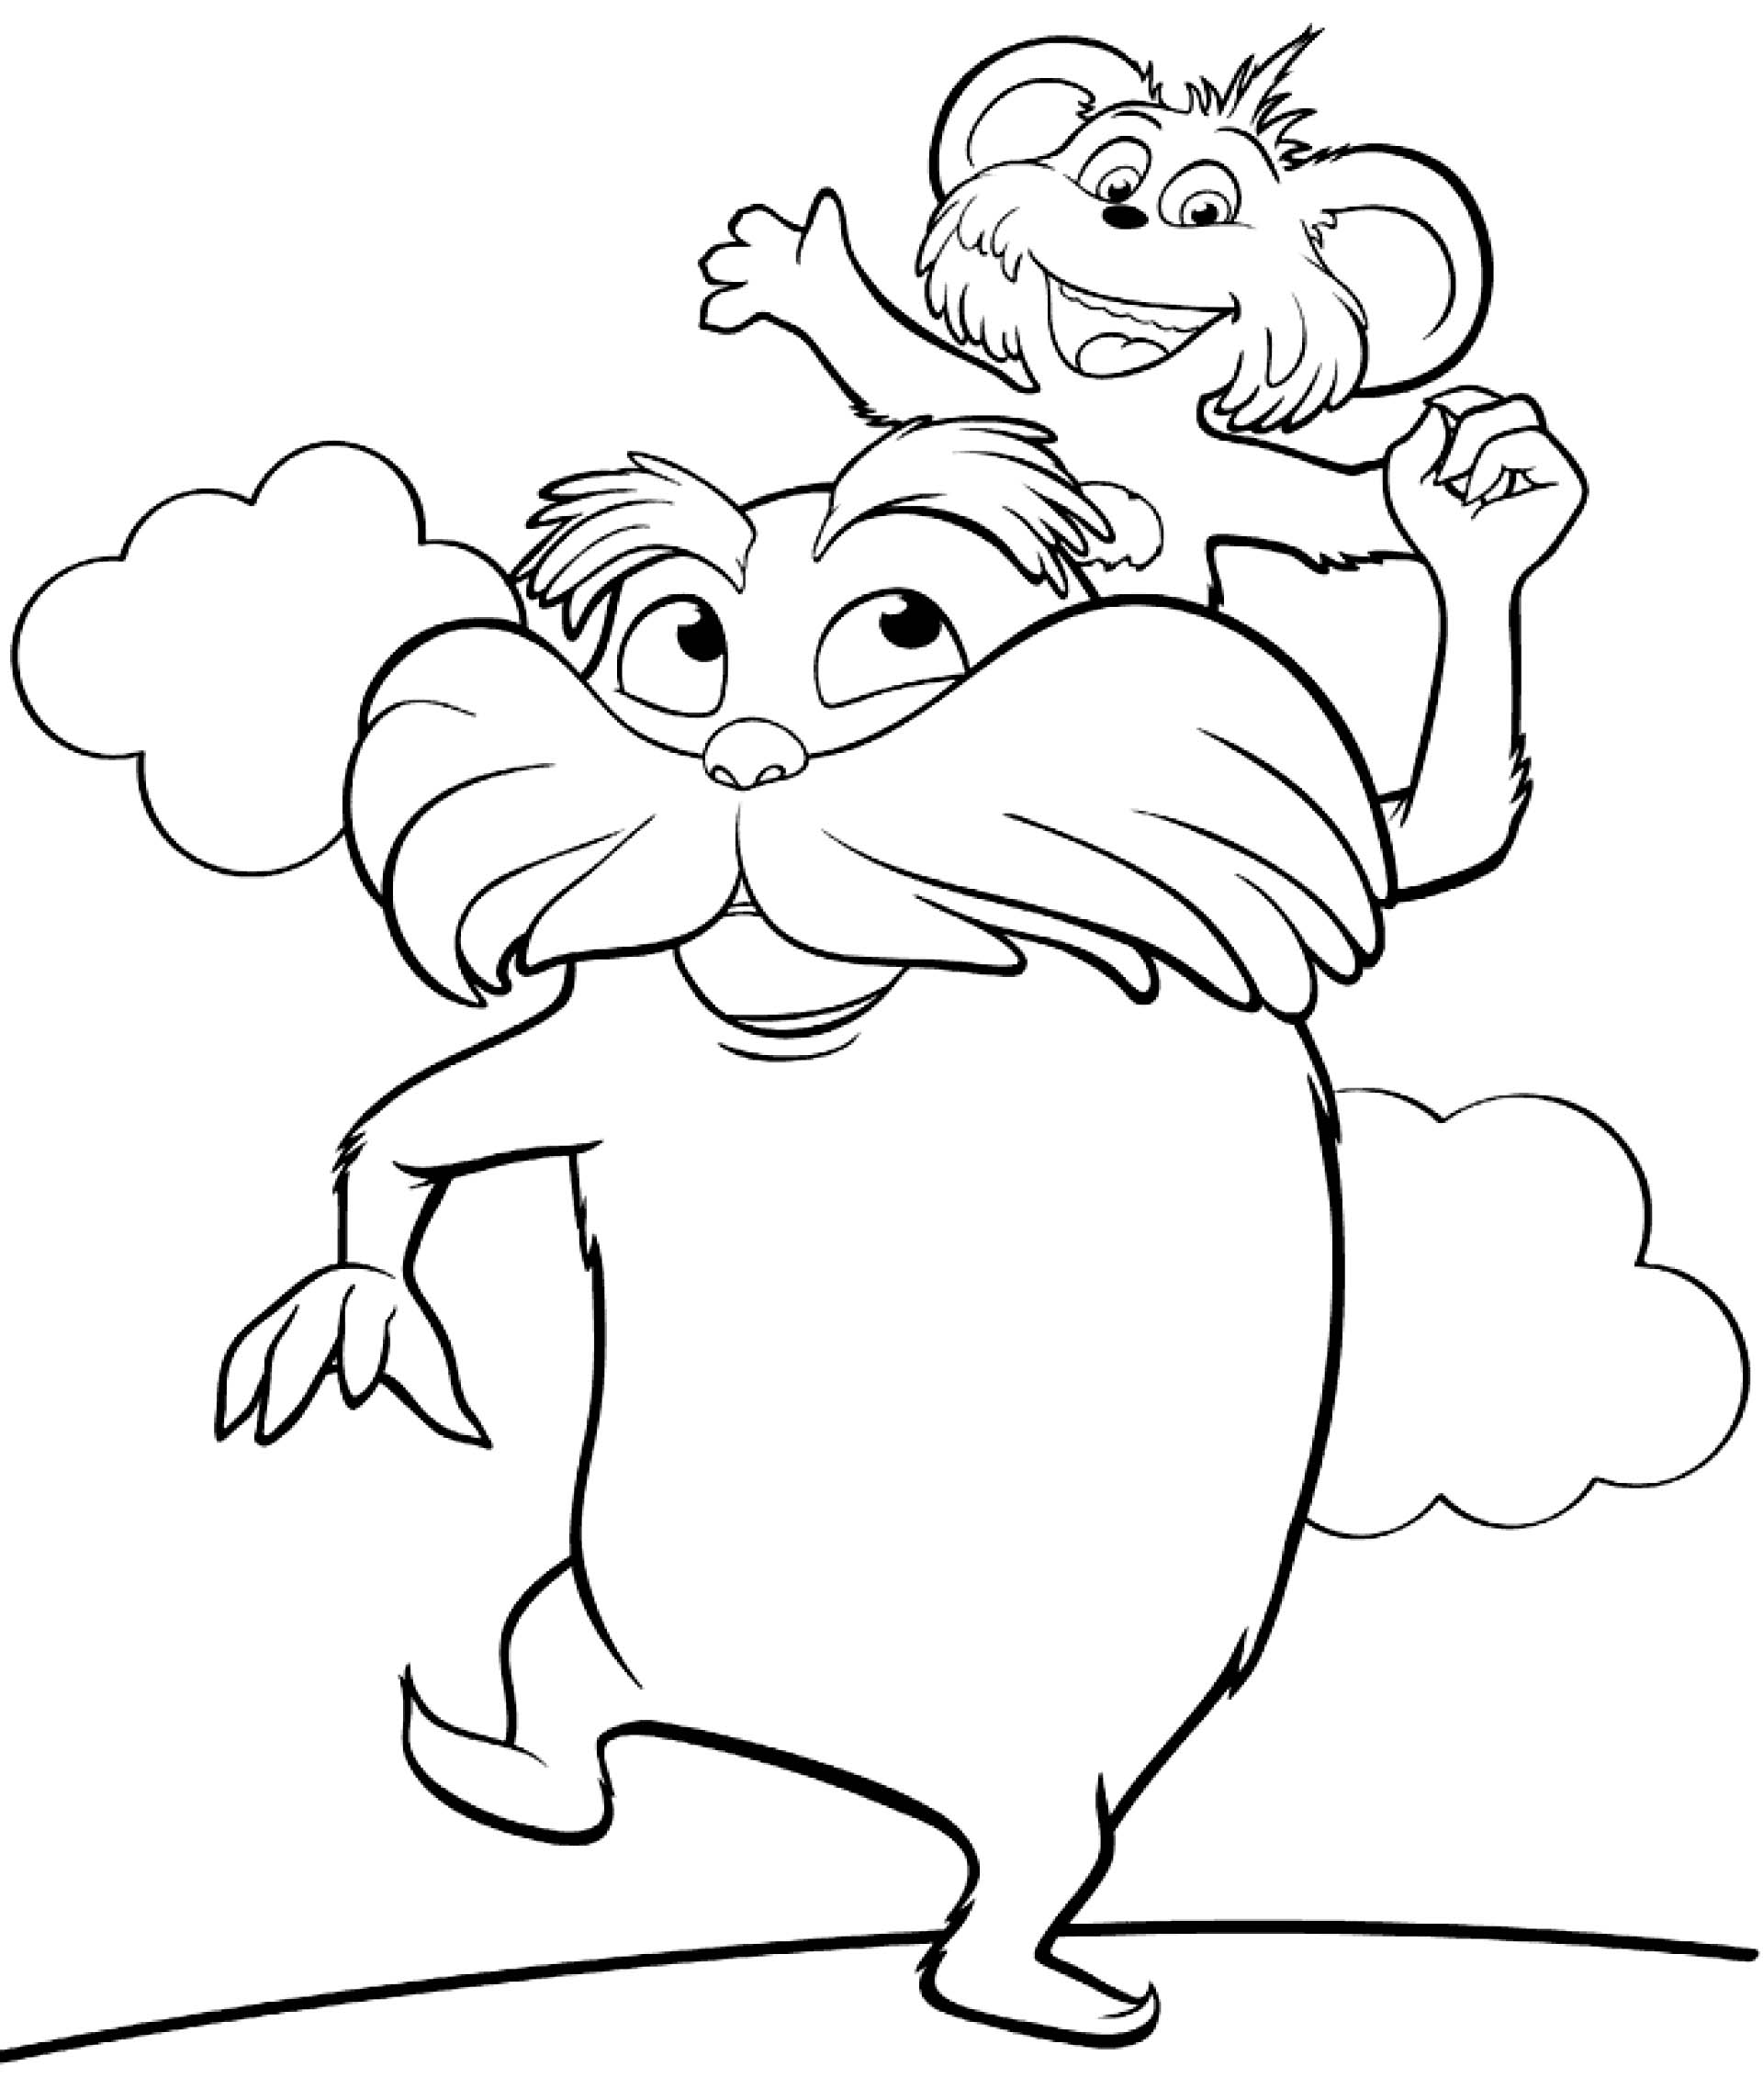 Lorax characters clipart.